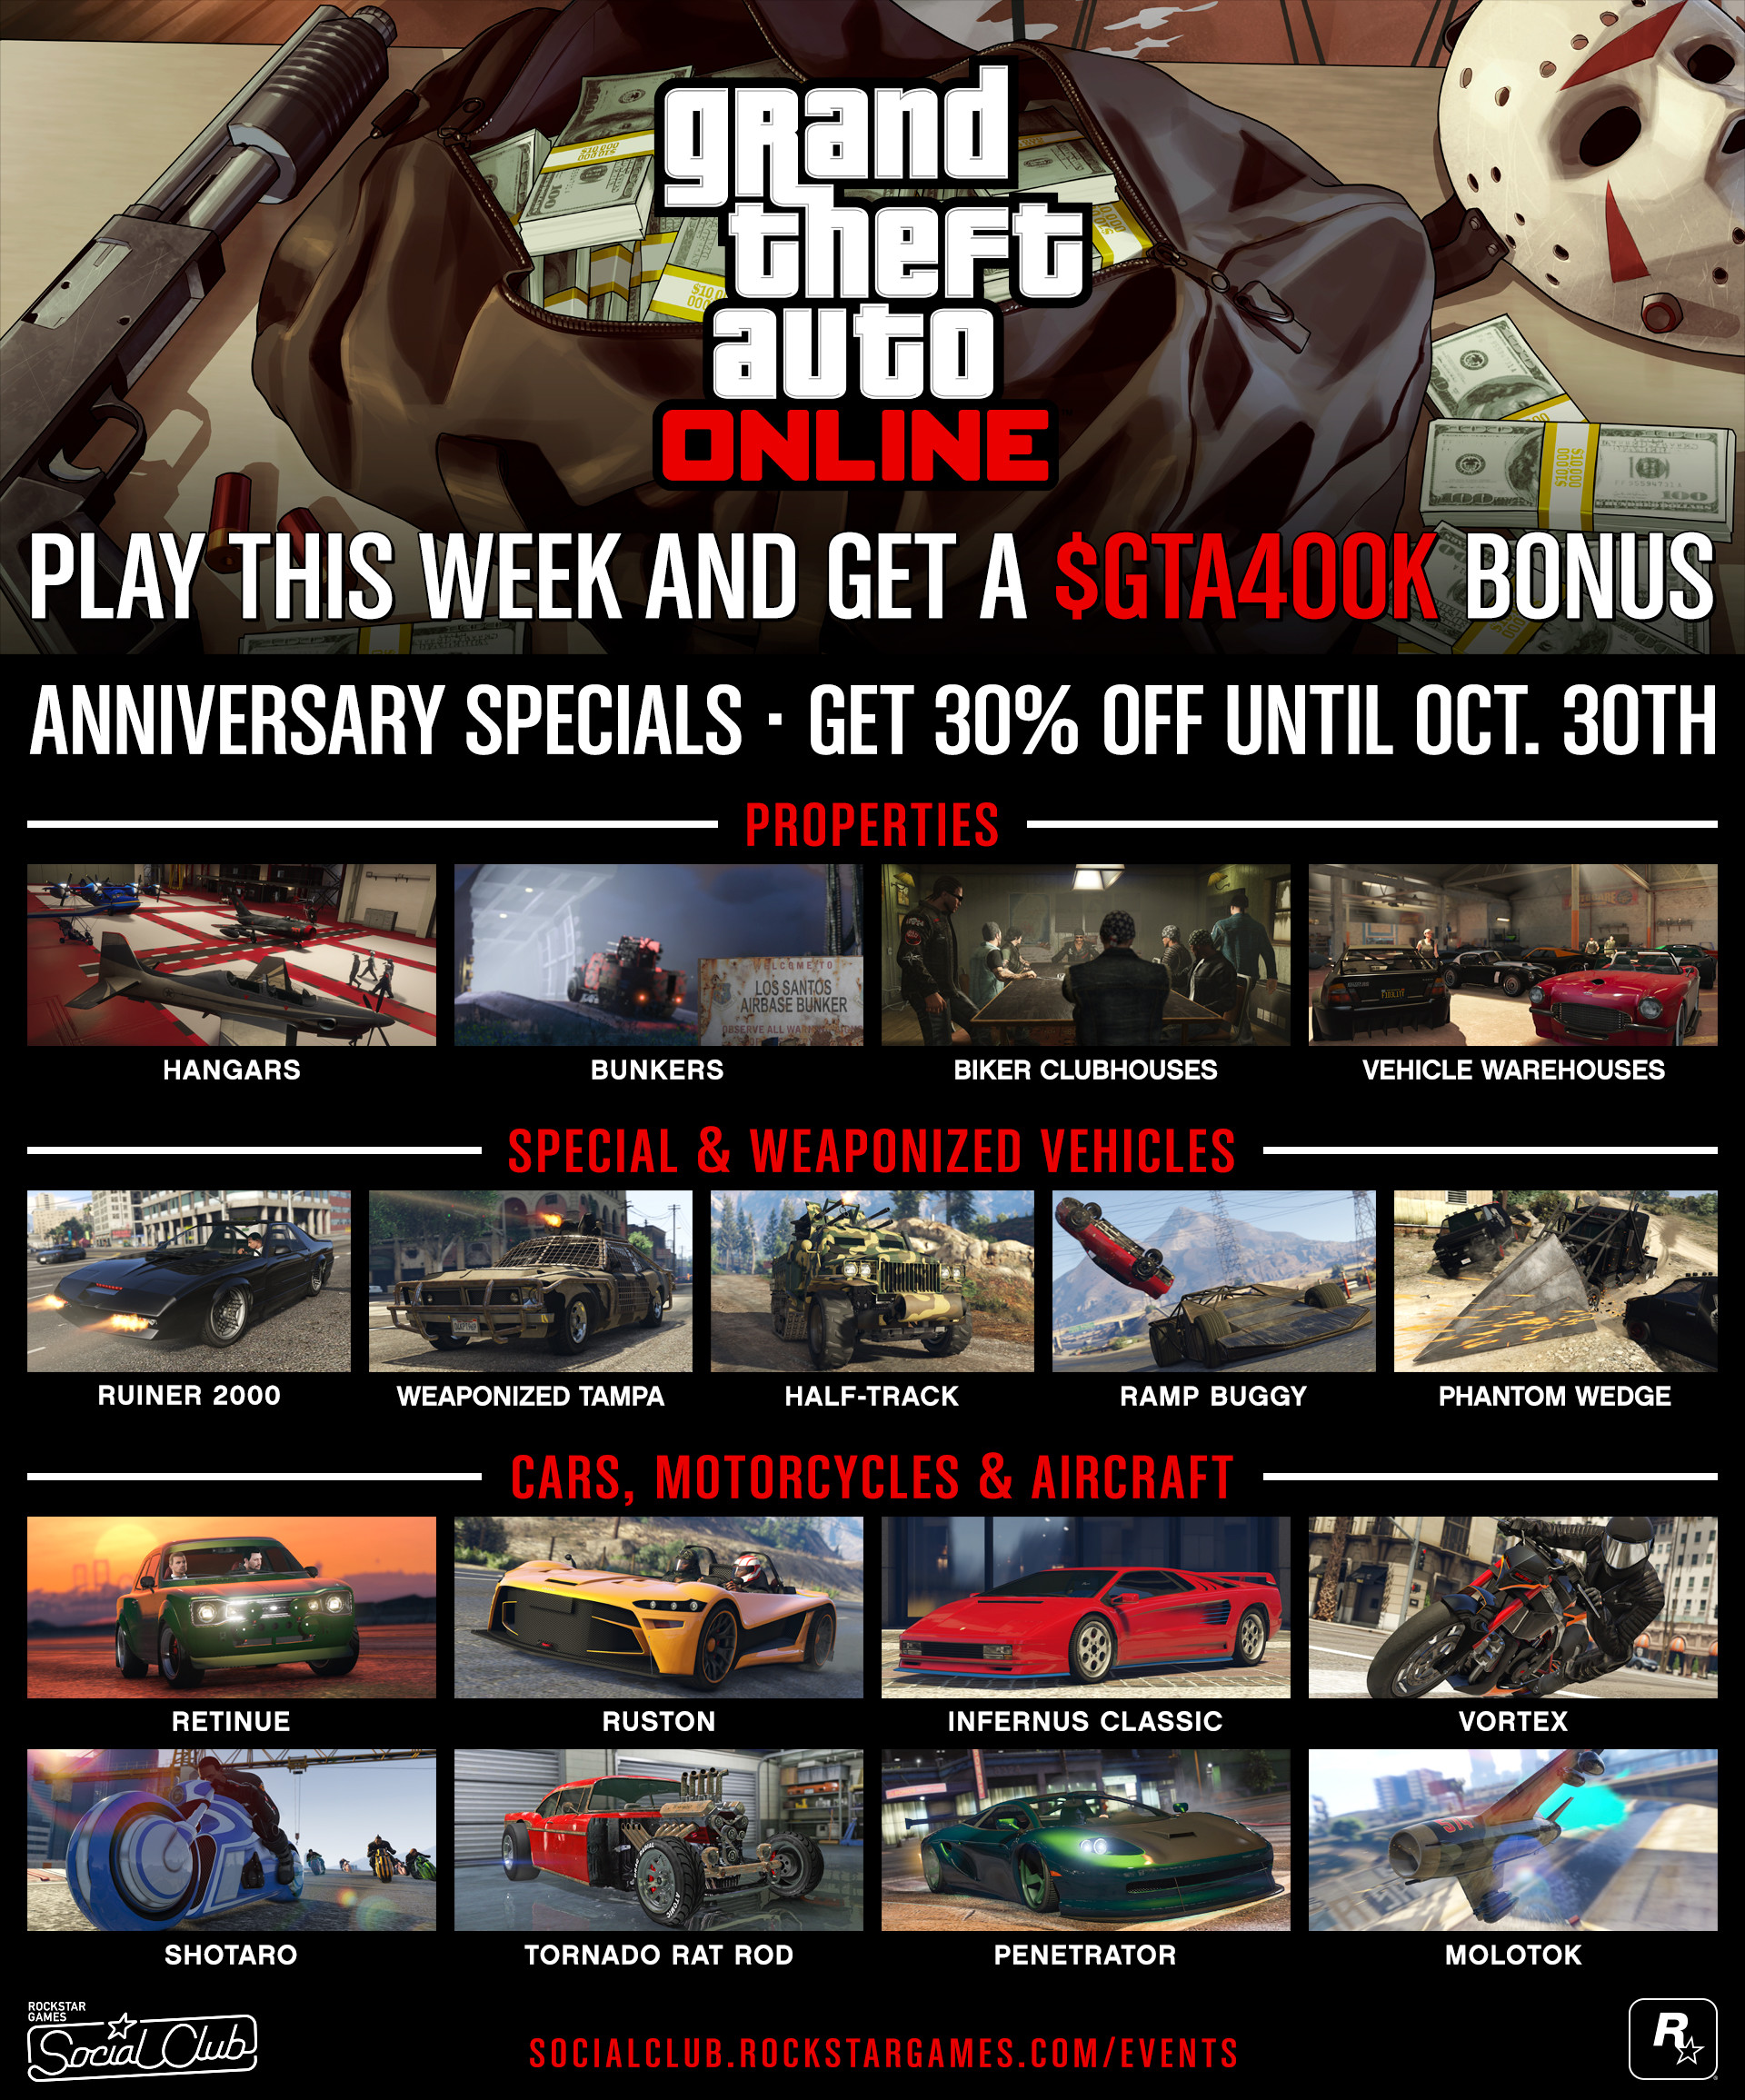 Earn GTA$400,000 by logging into GTA Online through Nov 6th - Neowin